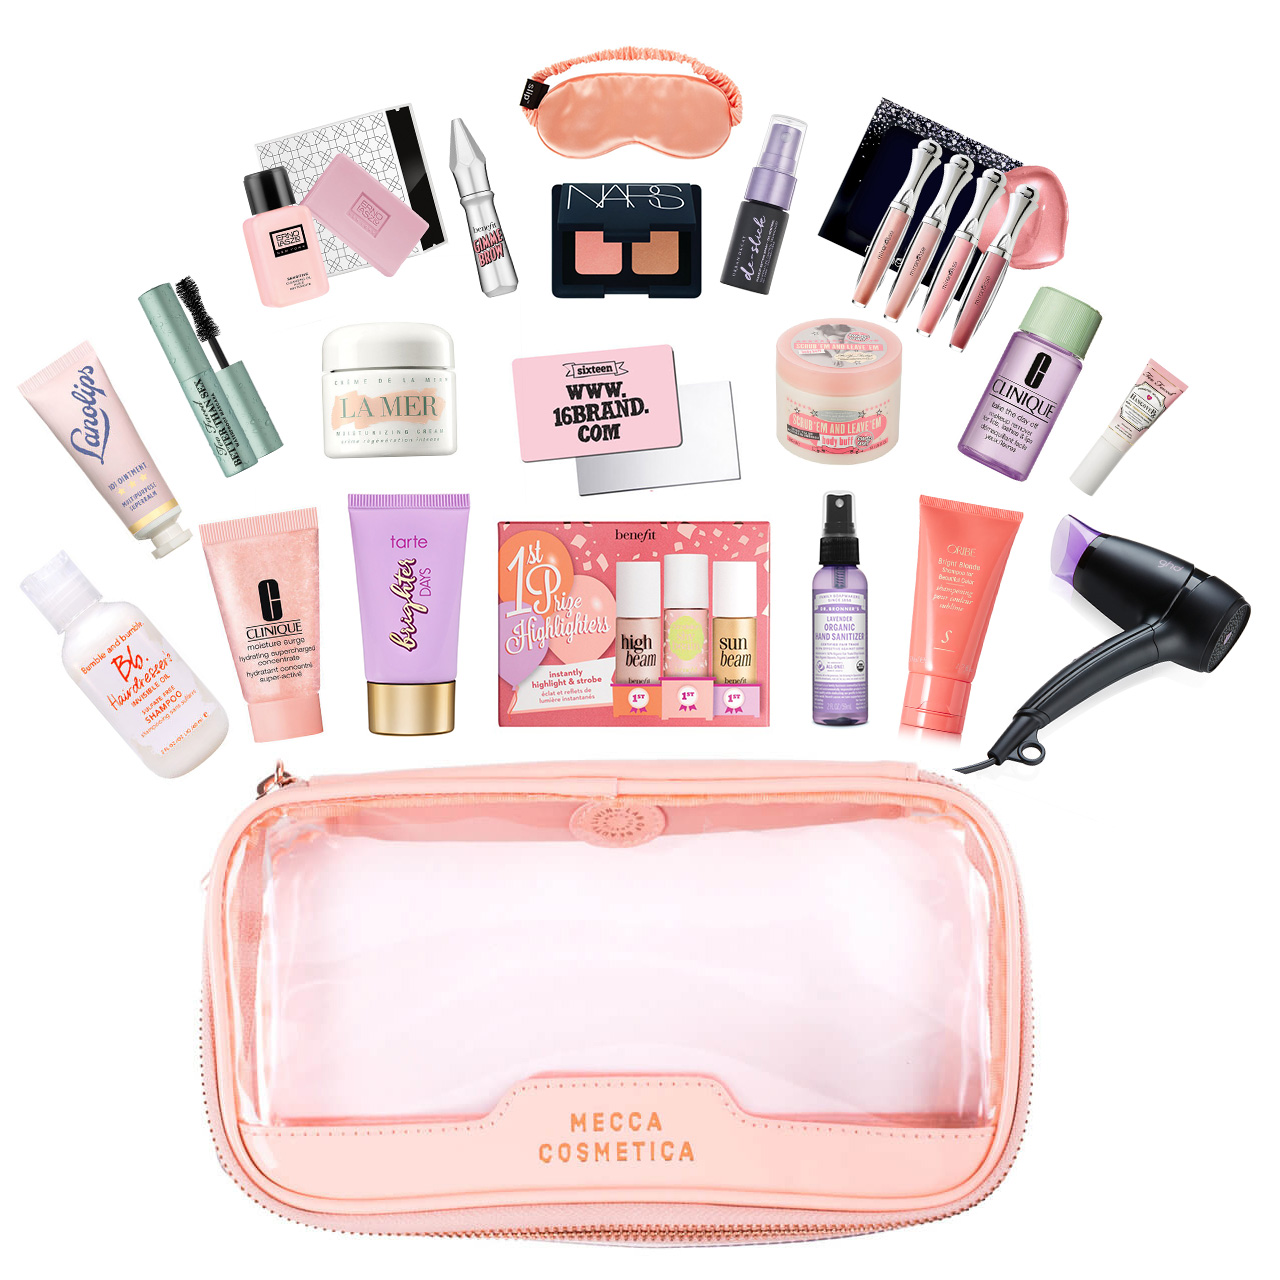 Pack Like A Beauty Pro With These Minis - Grazia